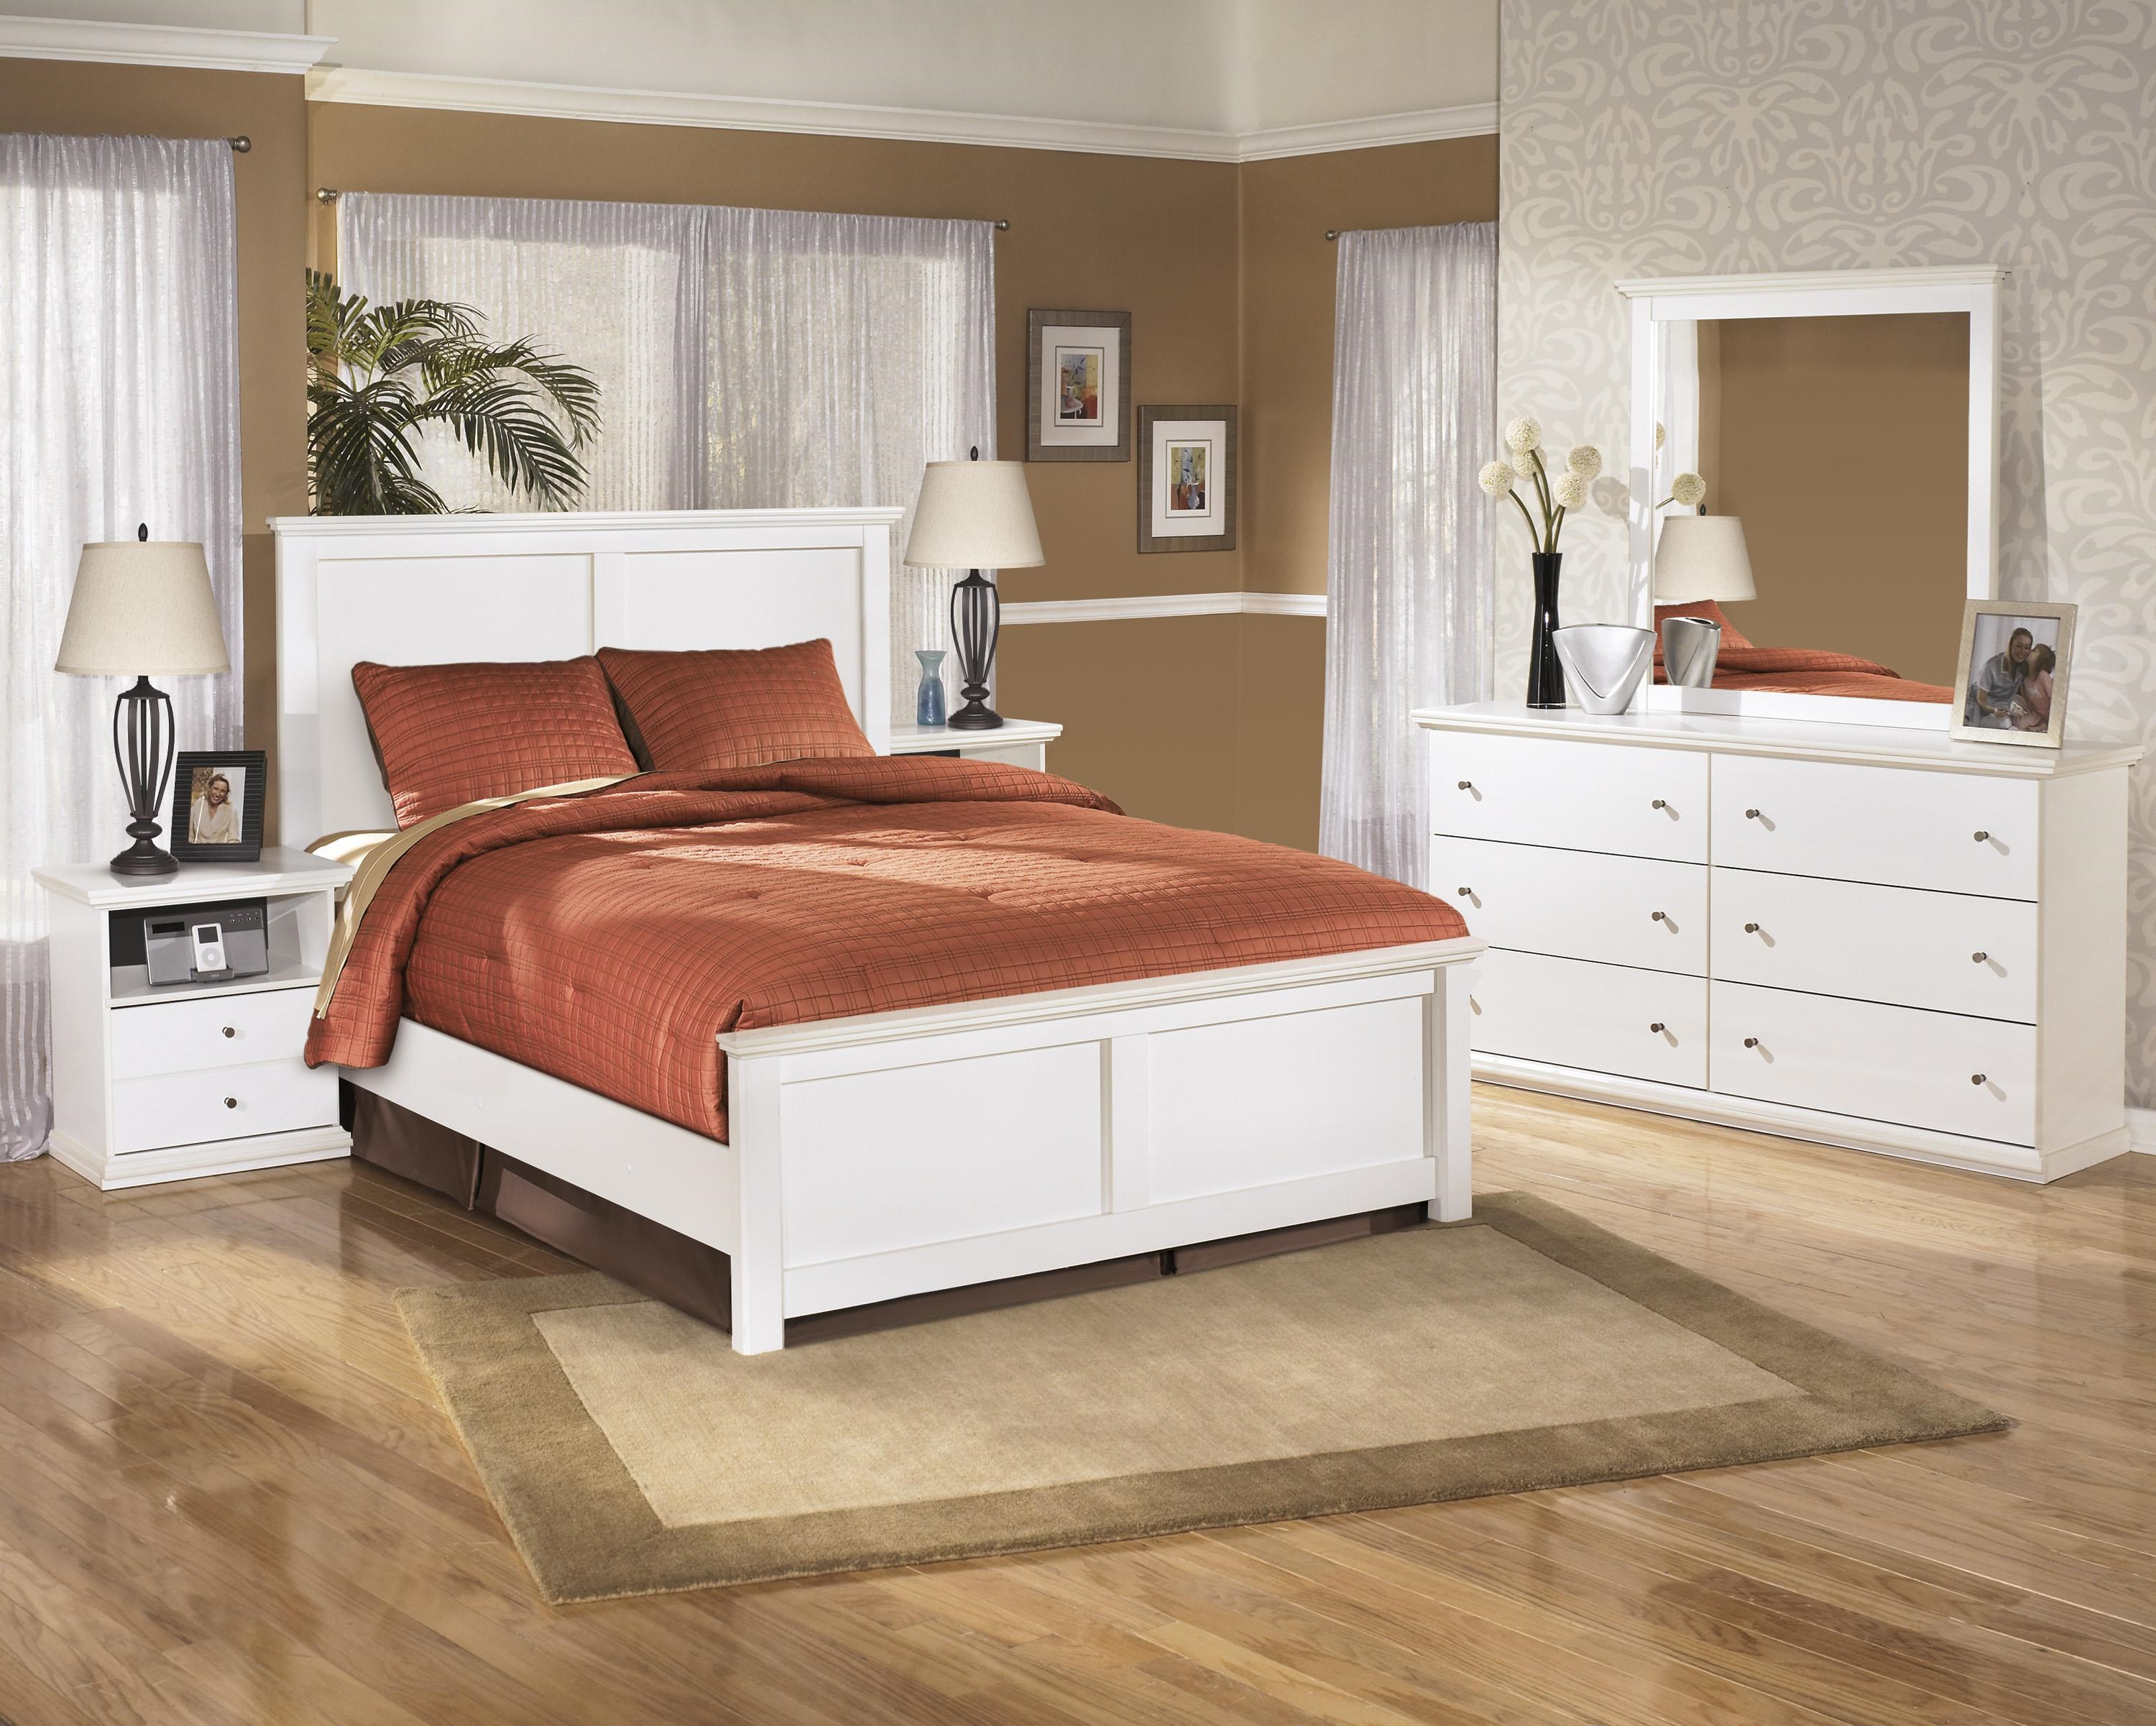 King Panel Bed, Nightstand, Dresser and Mirr